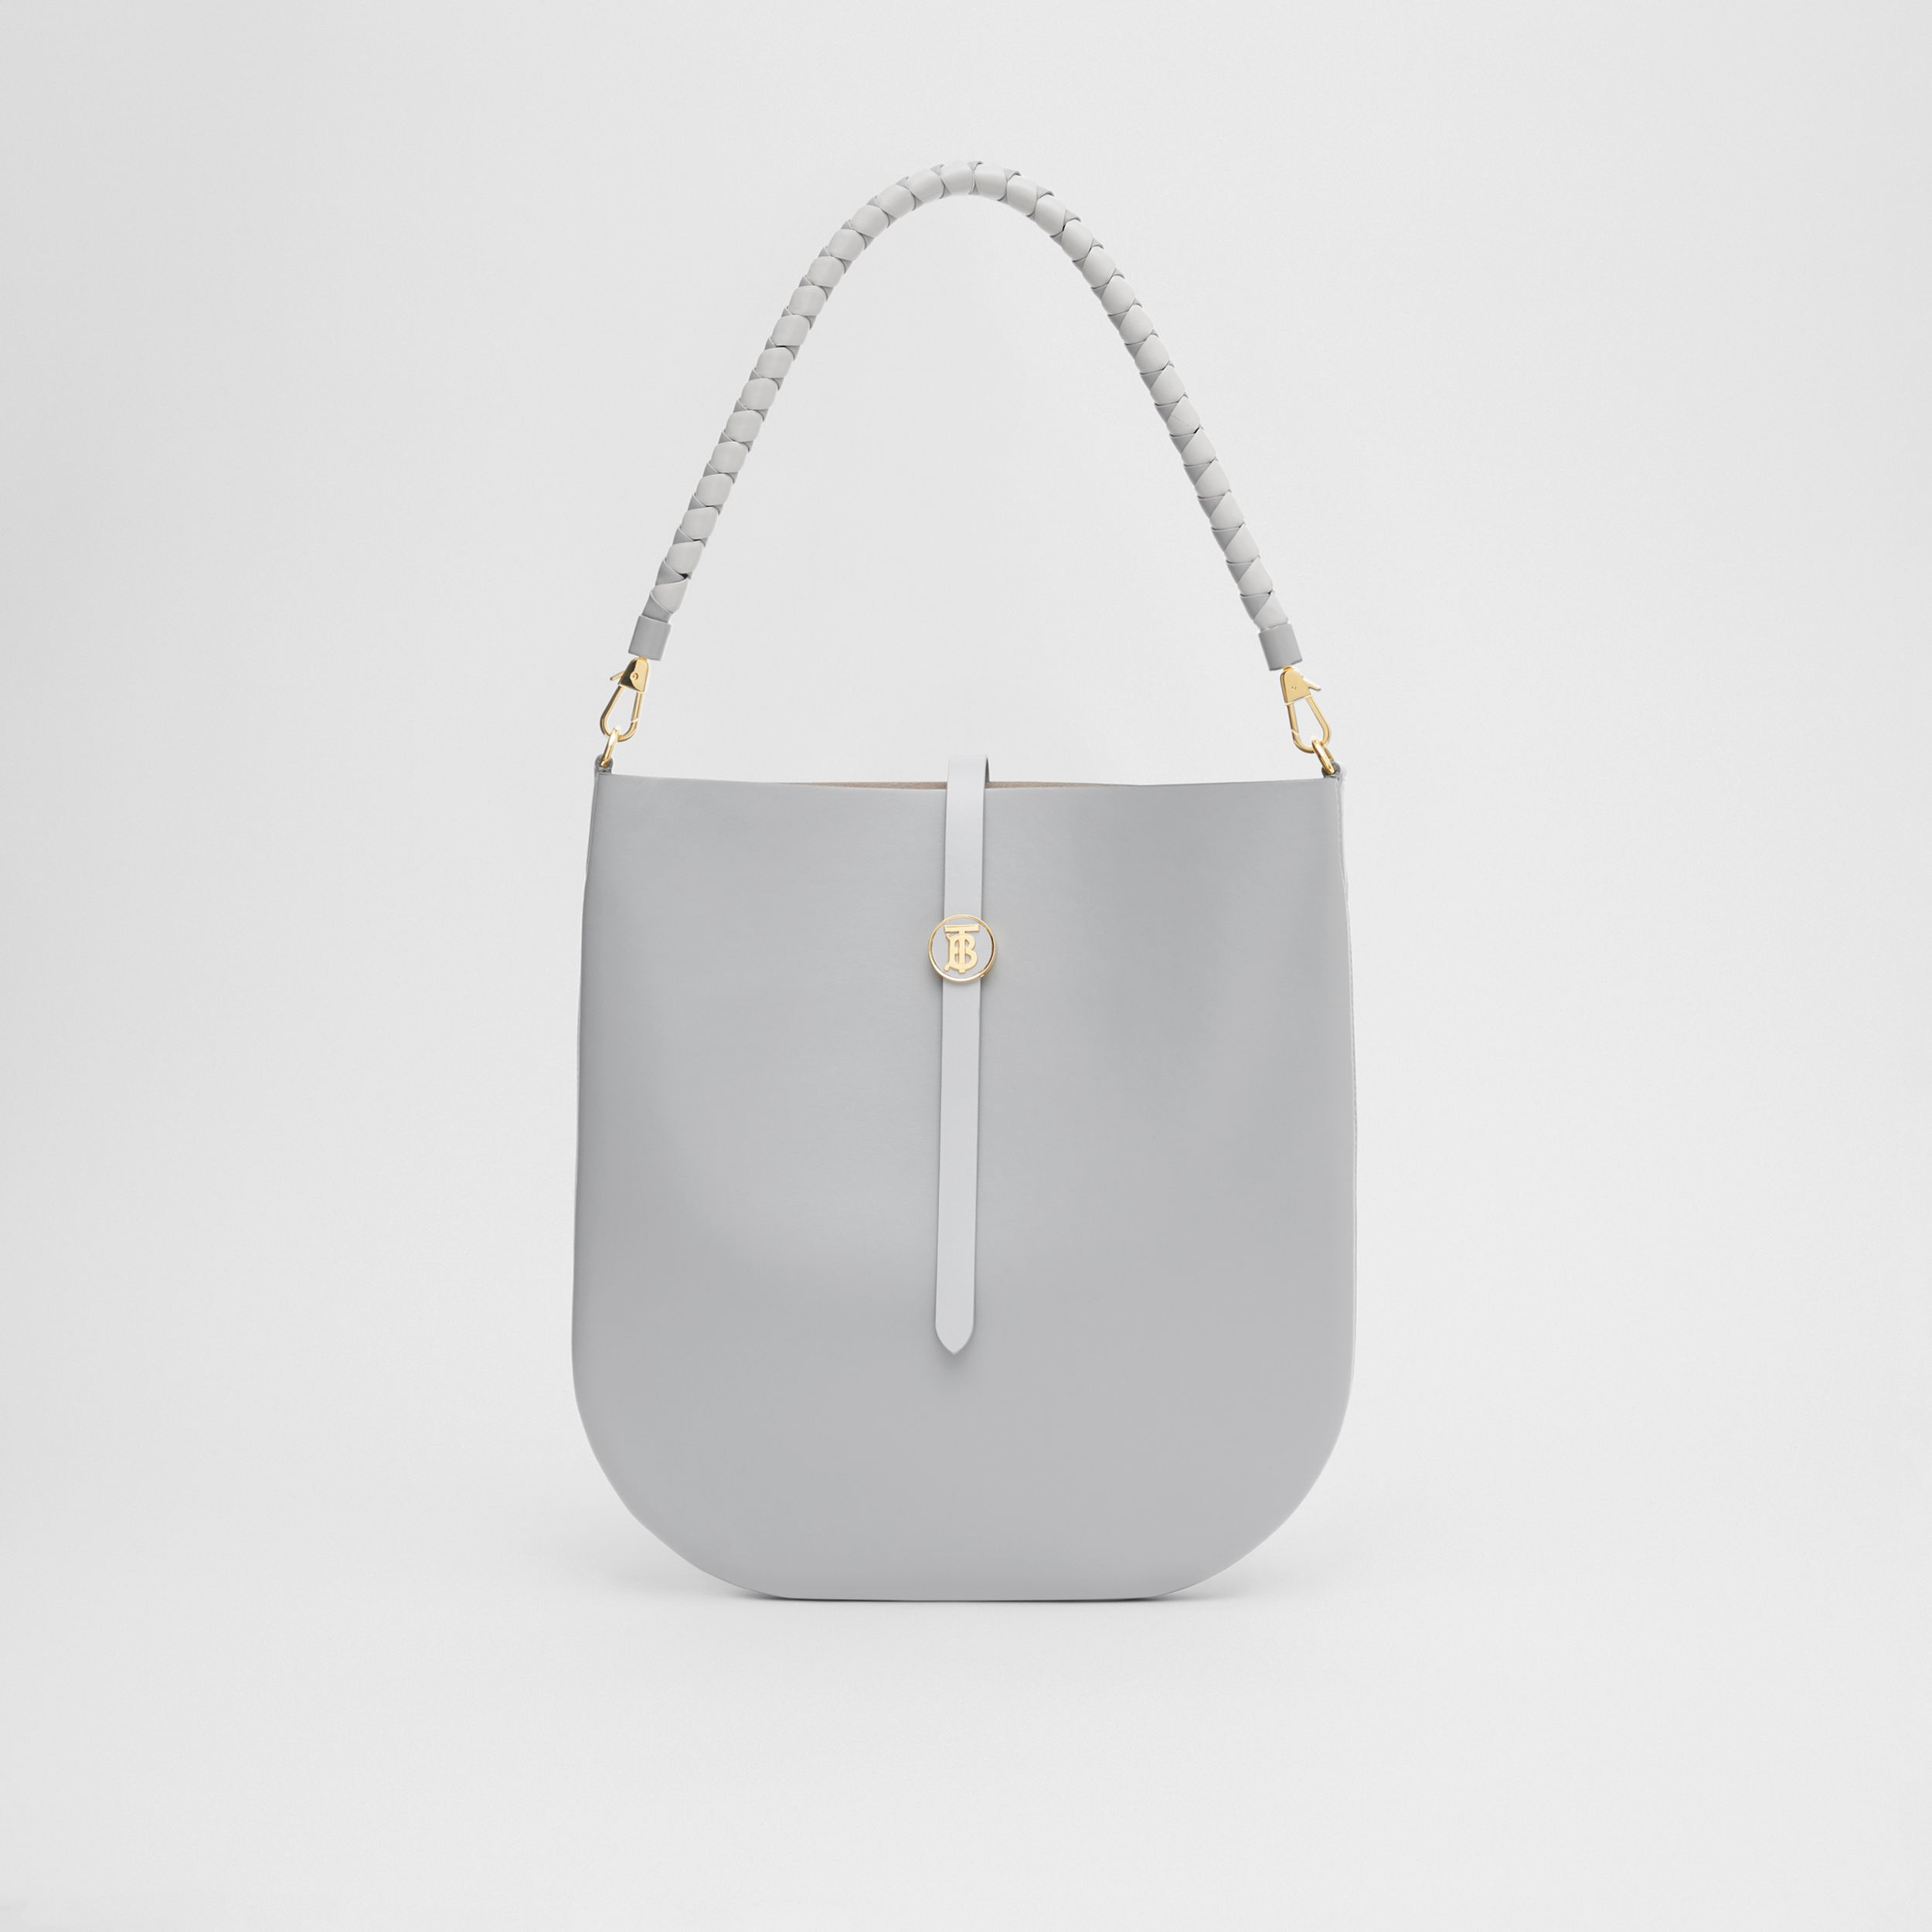 Leather Anne Bag in Cloud Grey - Women | Burberry - 1